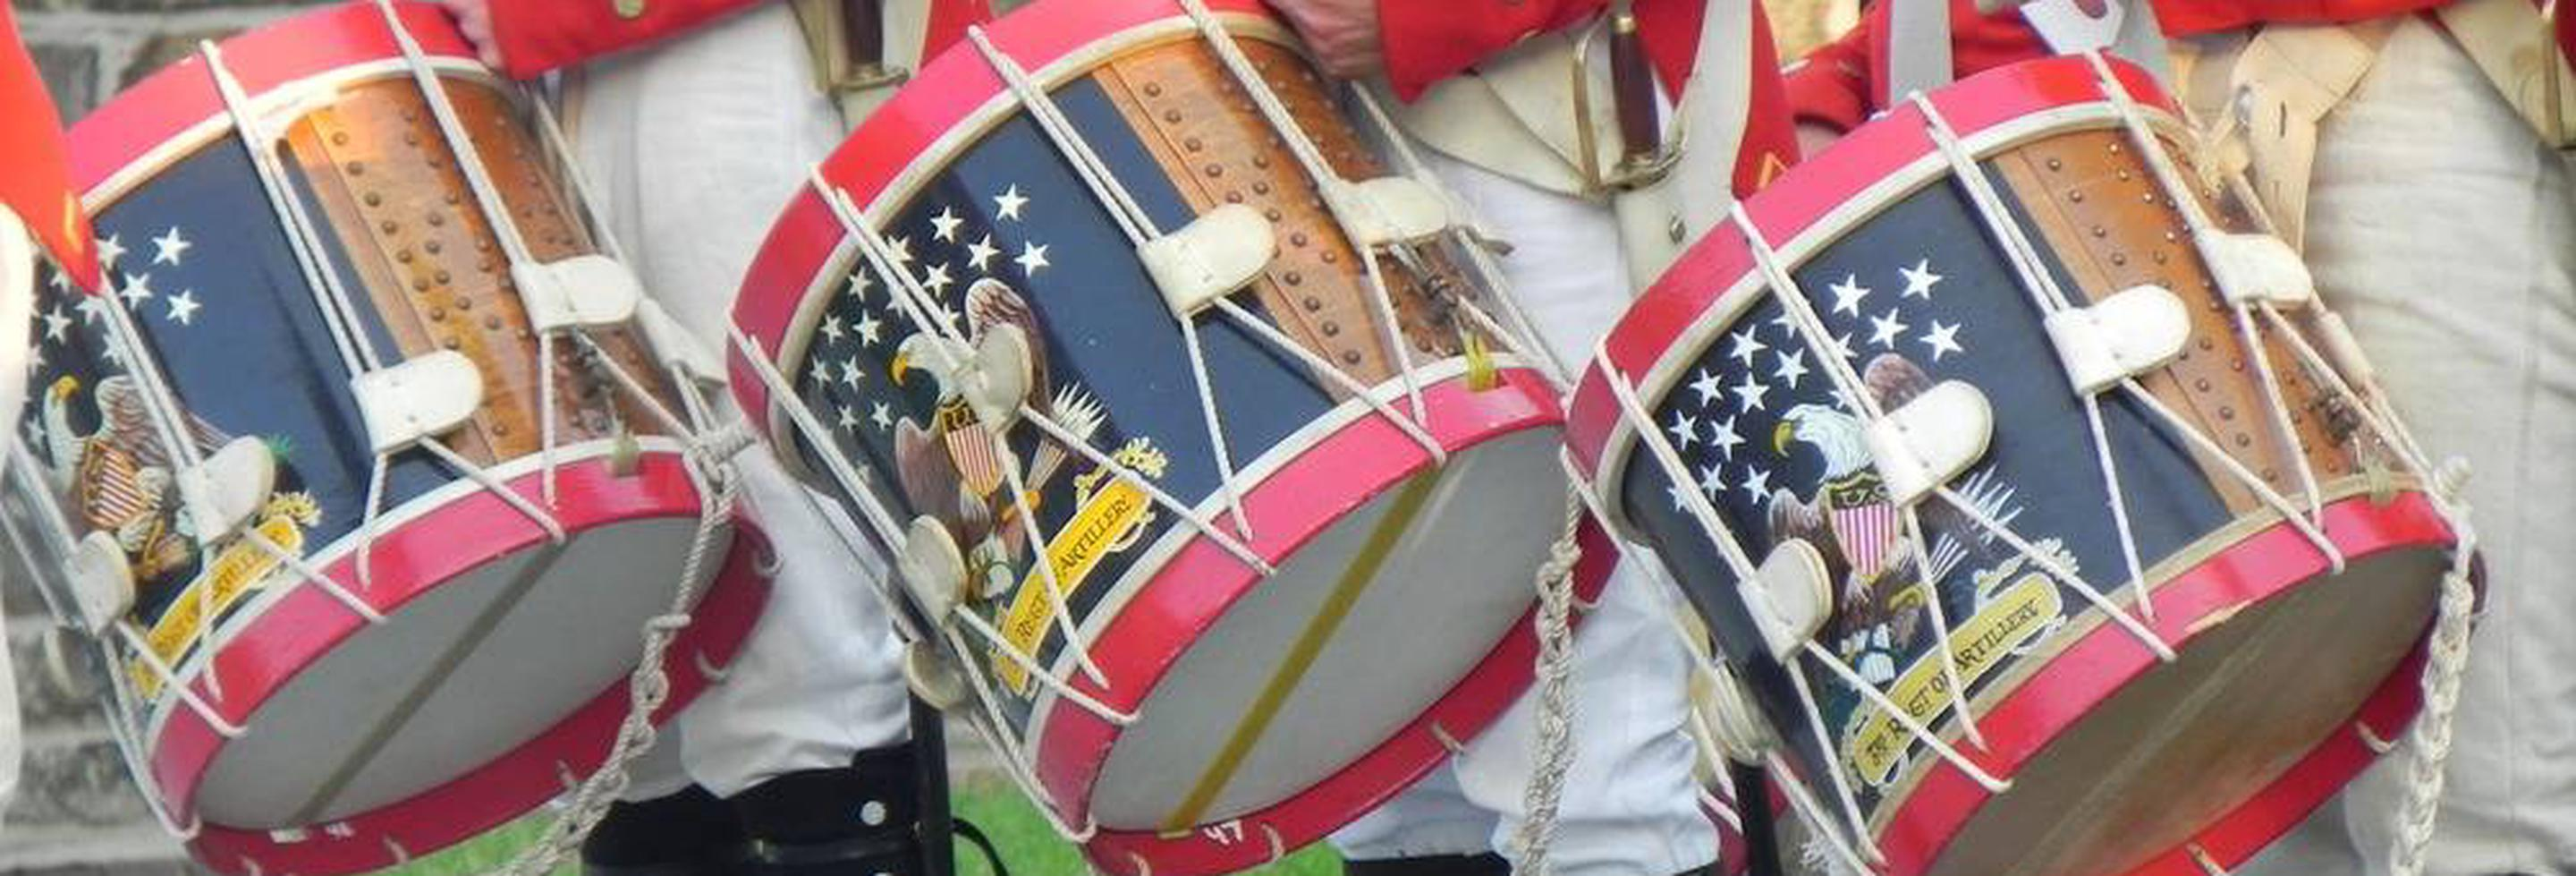 Fort McHenry Fife and Drum CorpsFort McHenry Fife and Drum Corps playing on authentic War of 1812 rope tension snare drums